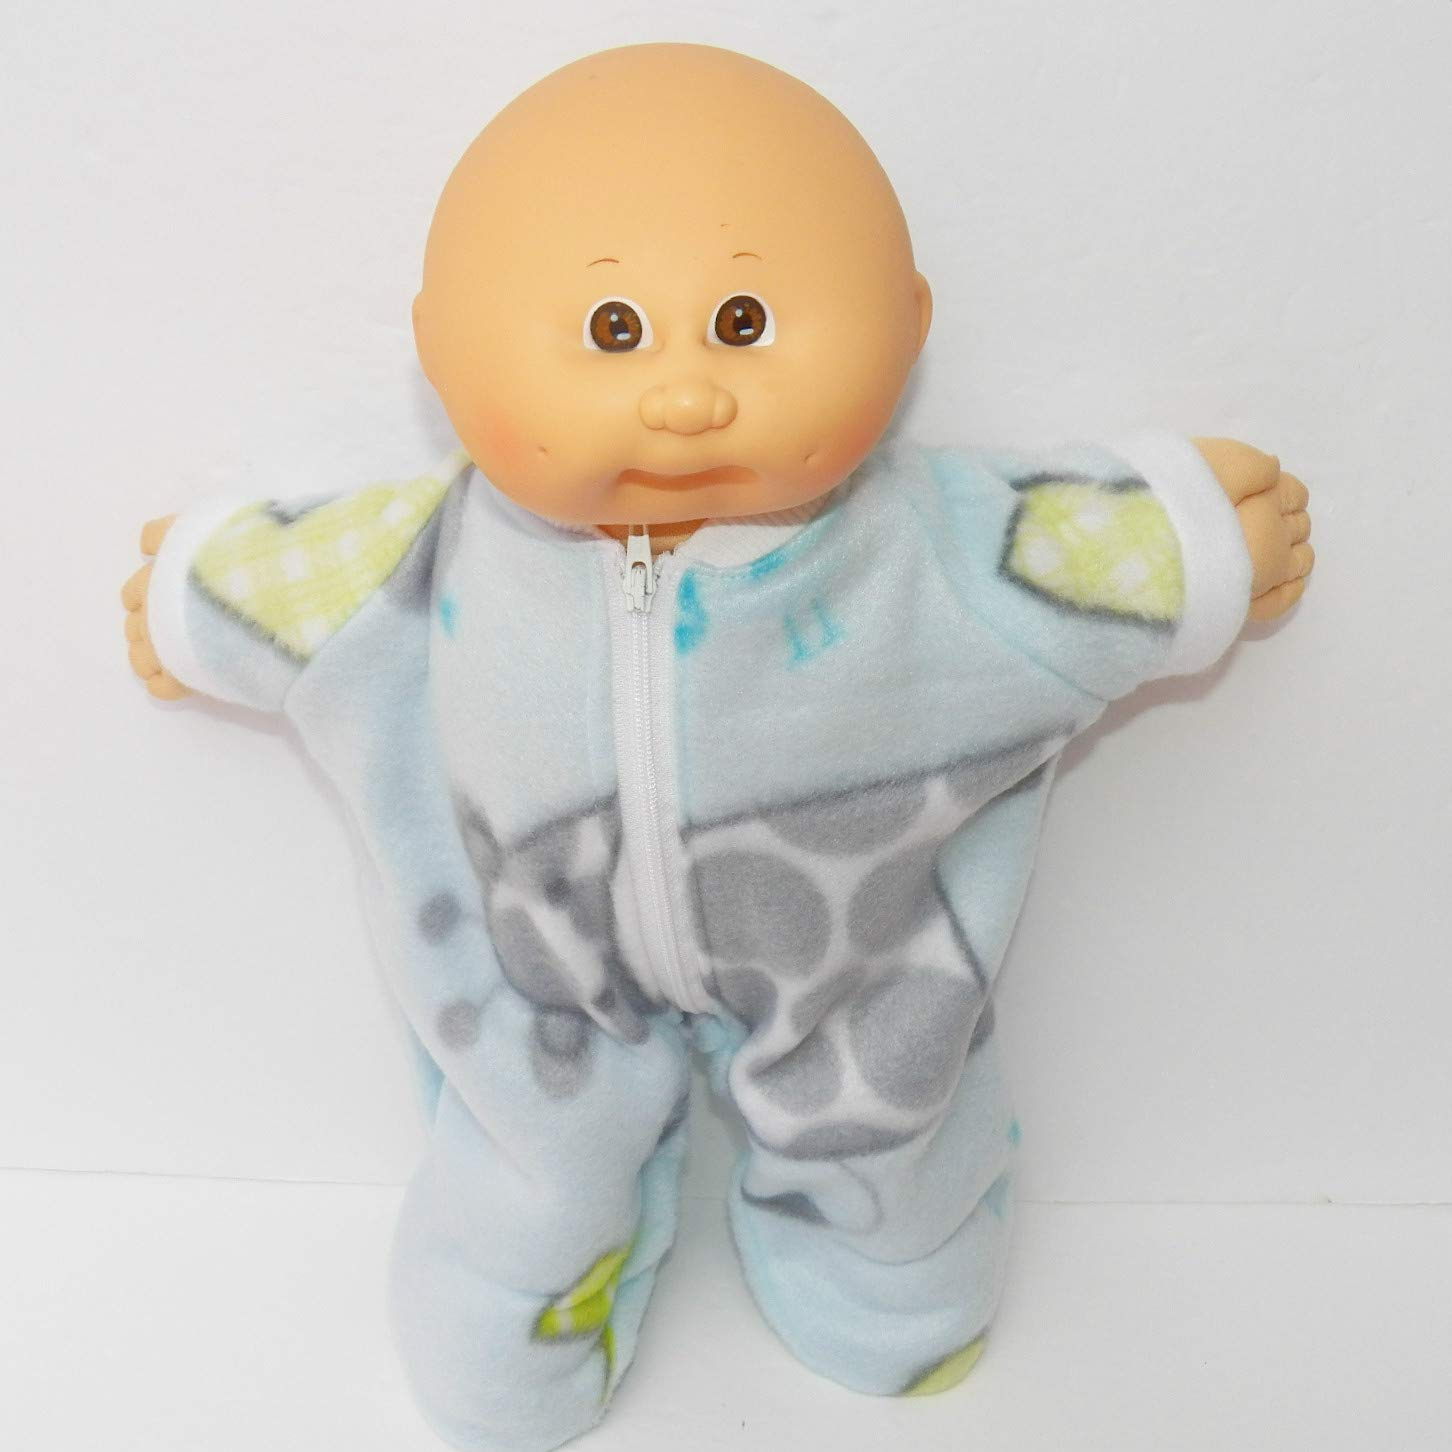 Cabbage Patch Doll Clothes 14 Inch Boy or Preemie Size Blue Giraffe Sleeper Pajamas Clothes Only